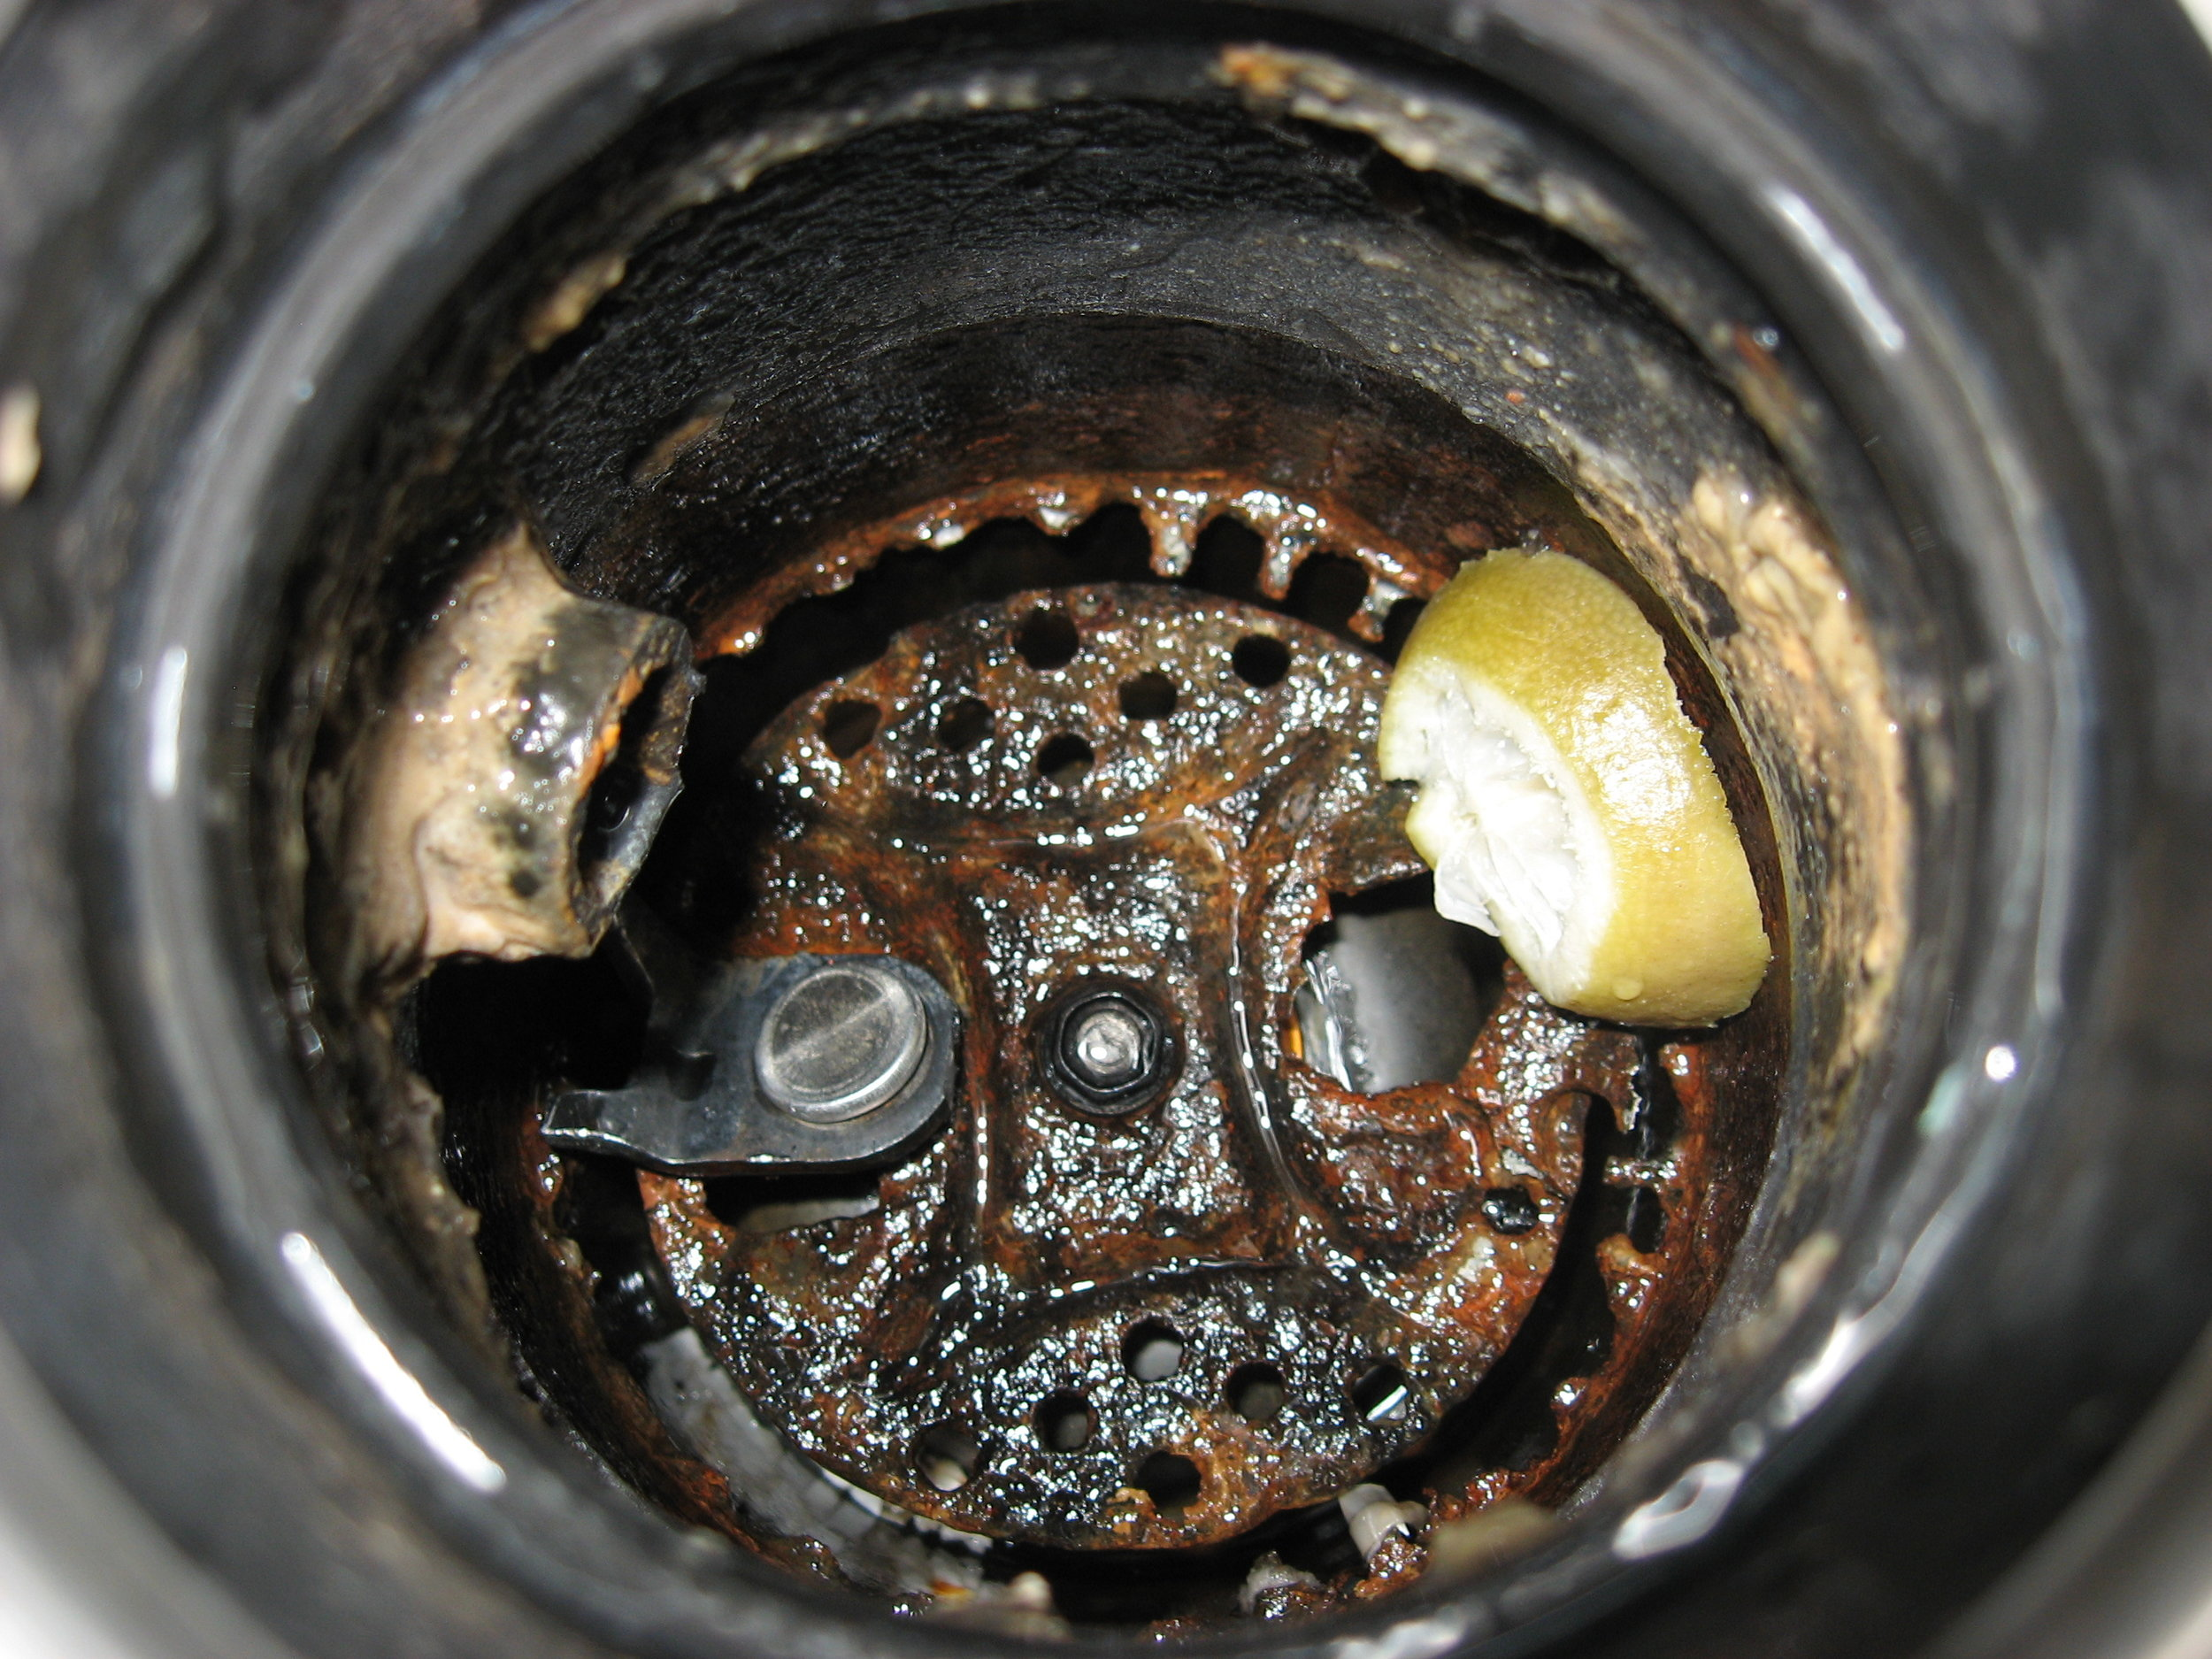 Corroded_Garbage_Disposal_From_Above.JPG